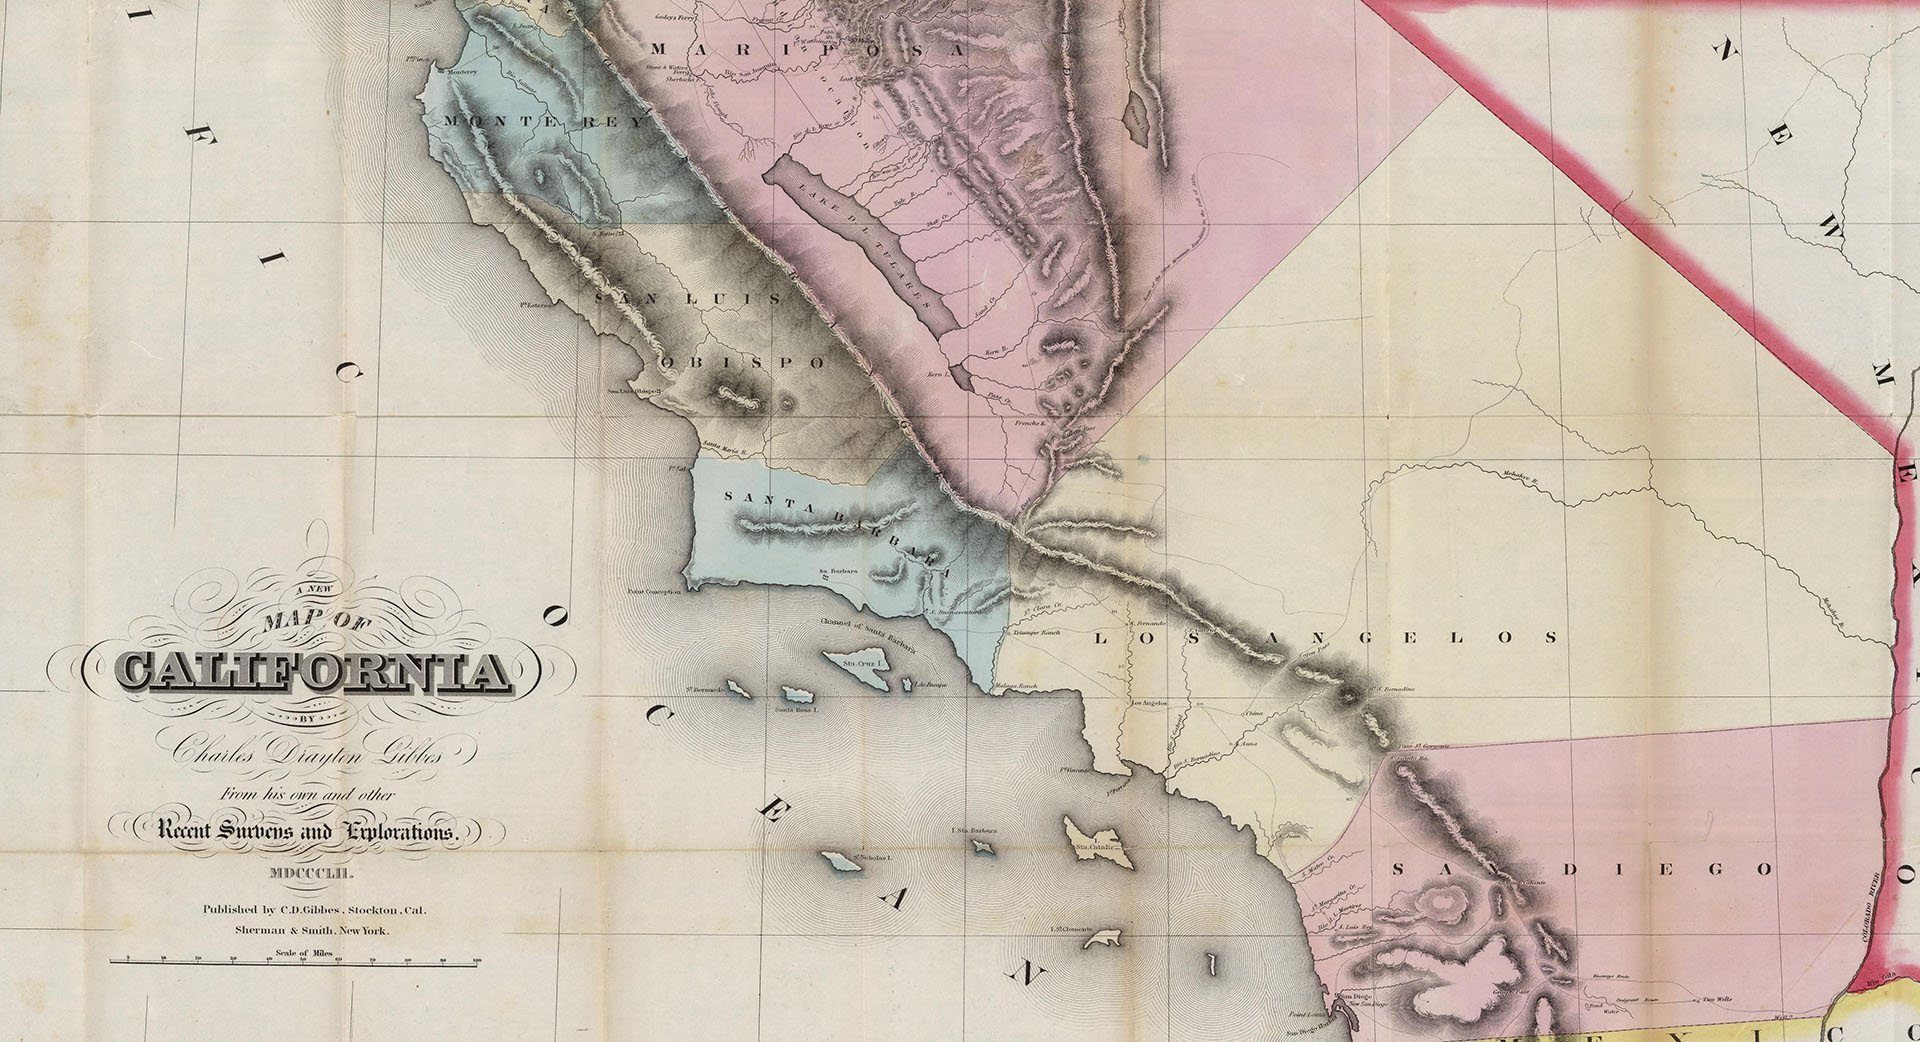 In 1852, Los Angeles County extended to California's eastern stateline, where it bordered the New Mexico Territory. Courtesy of the David Rumsey Map Collection.